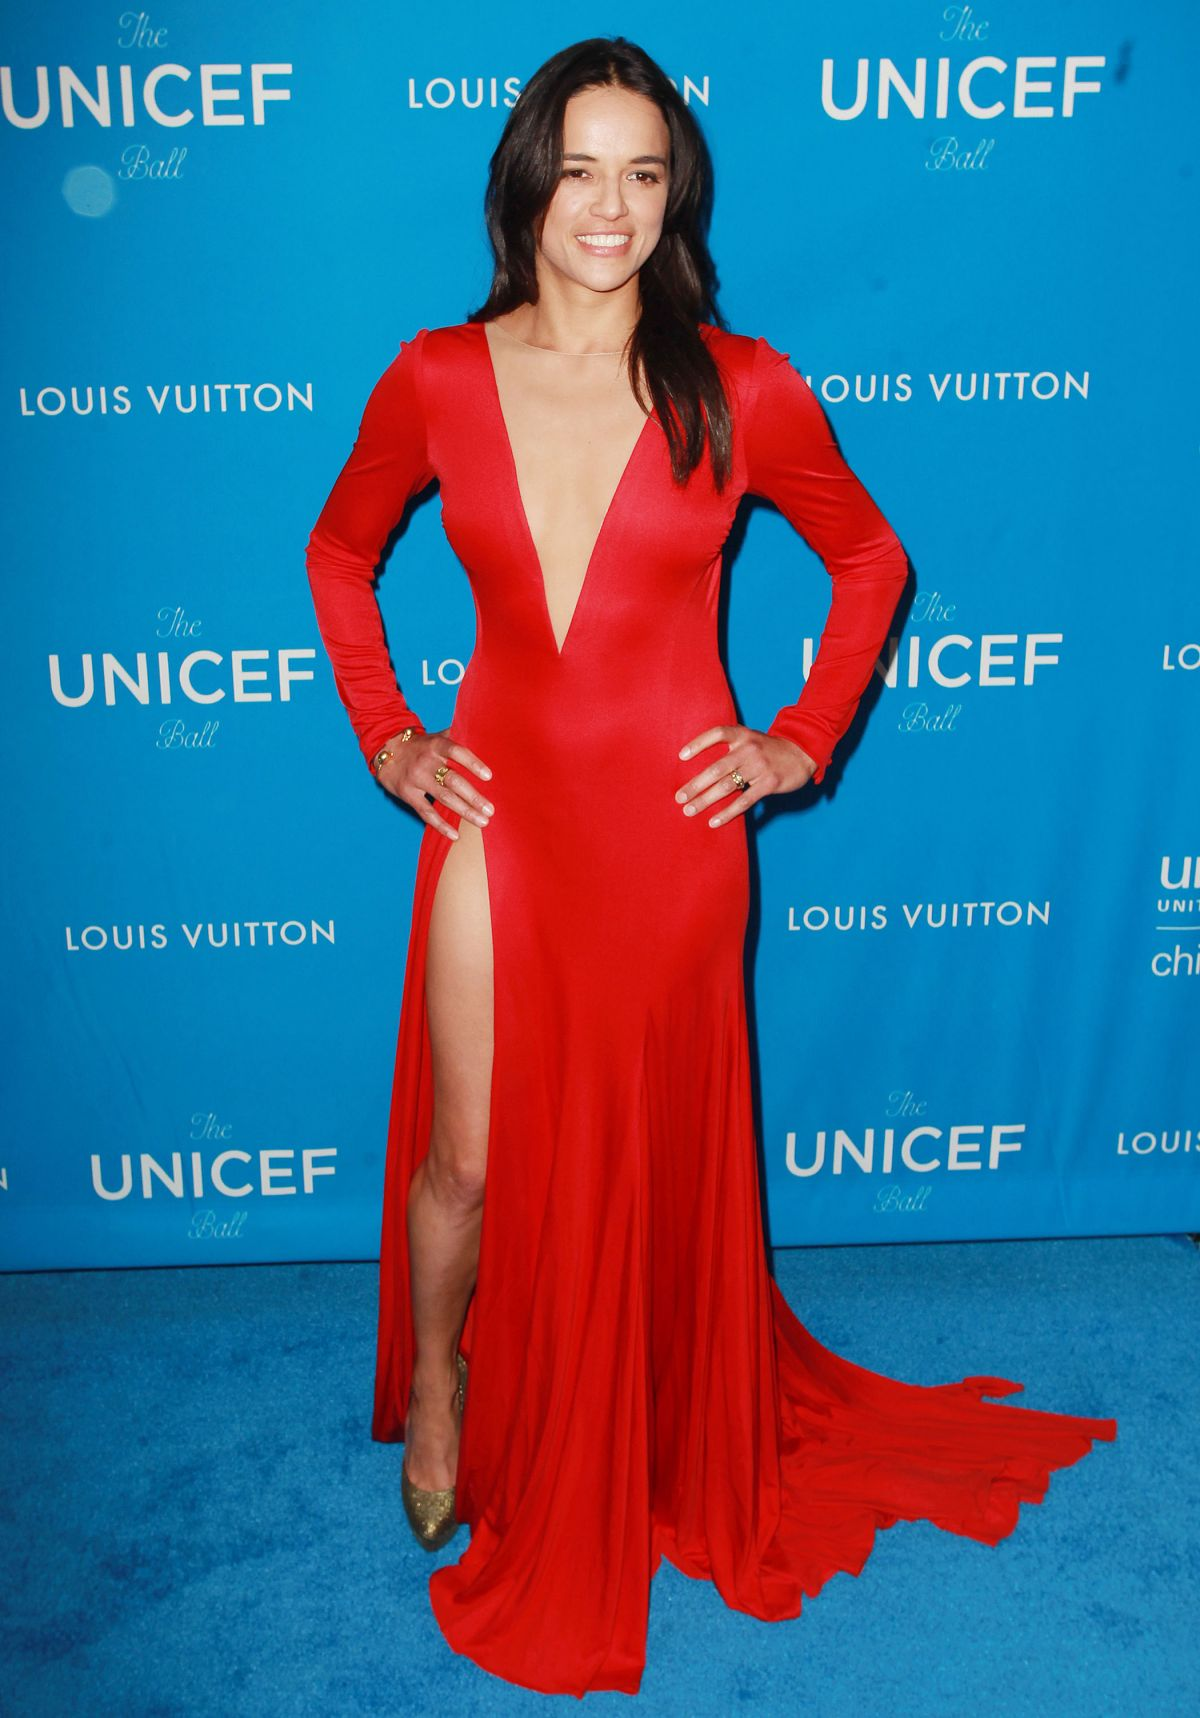 michelle-rodriguez-at-6th-biennial-unicef-ball-in-beverly-hills-01-12-2016_1